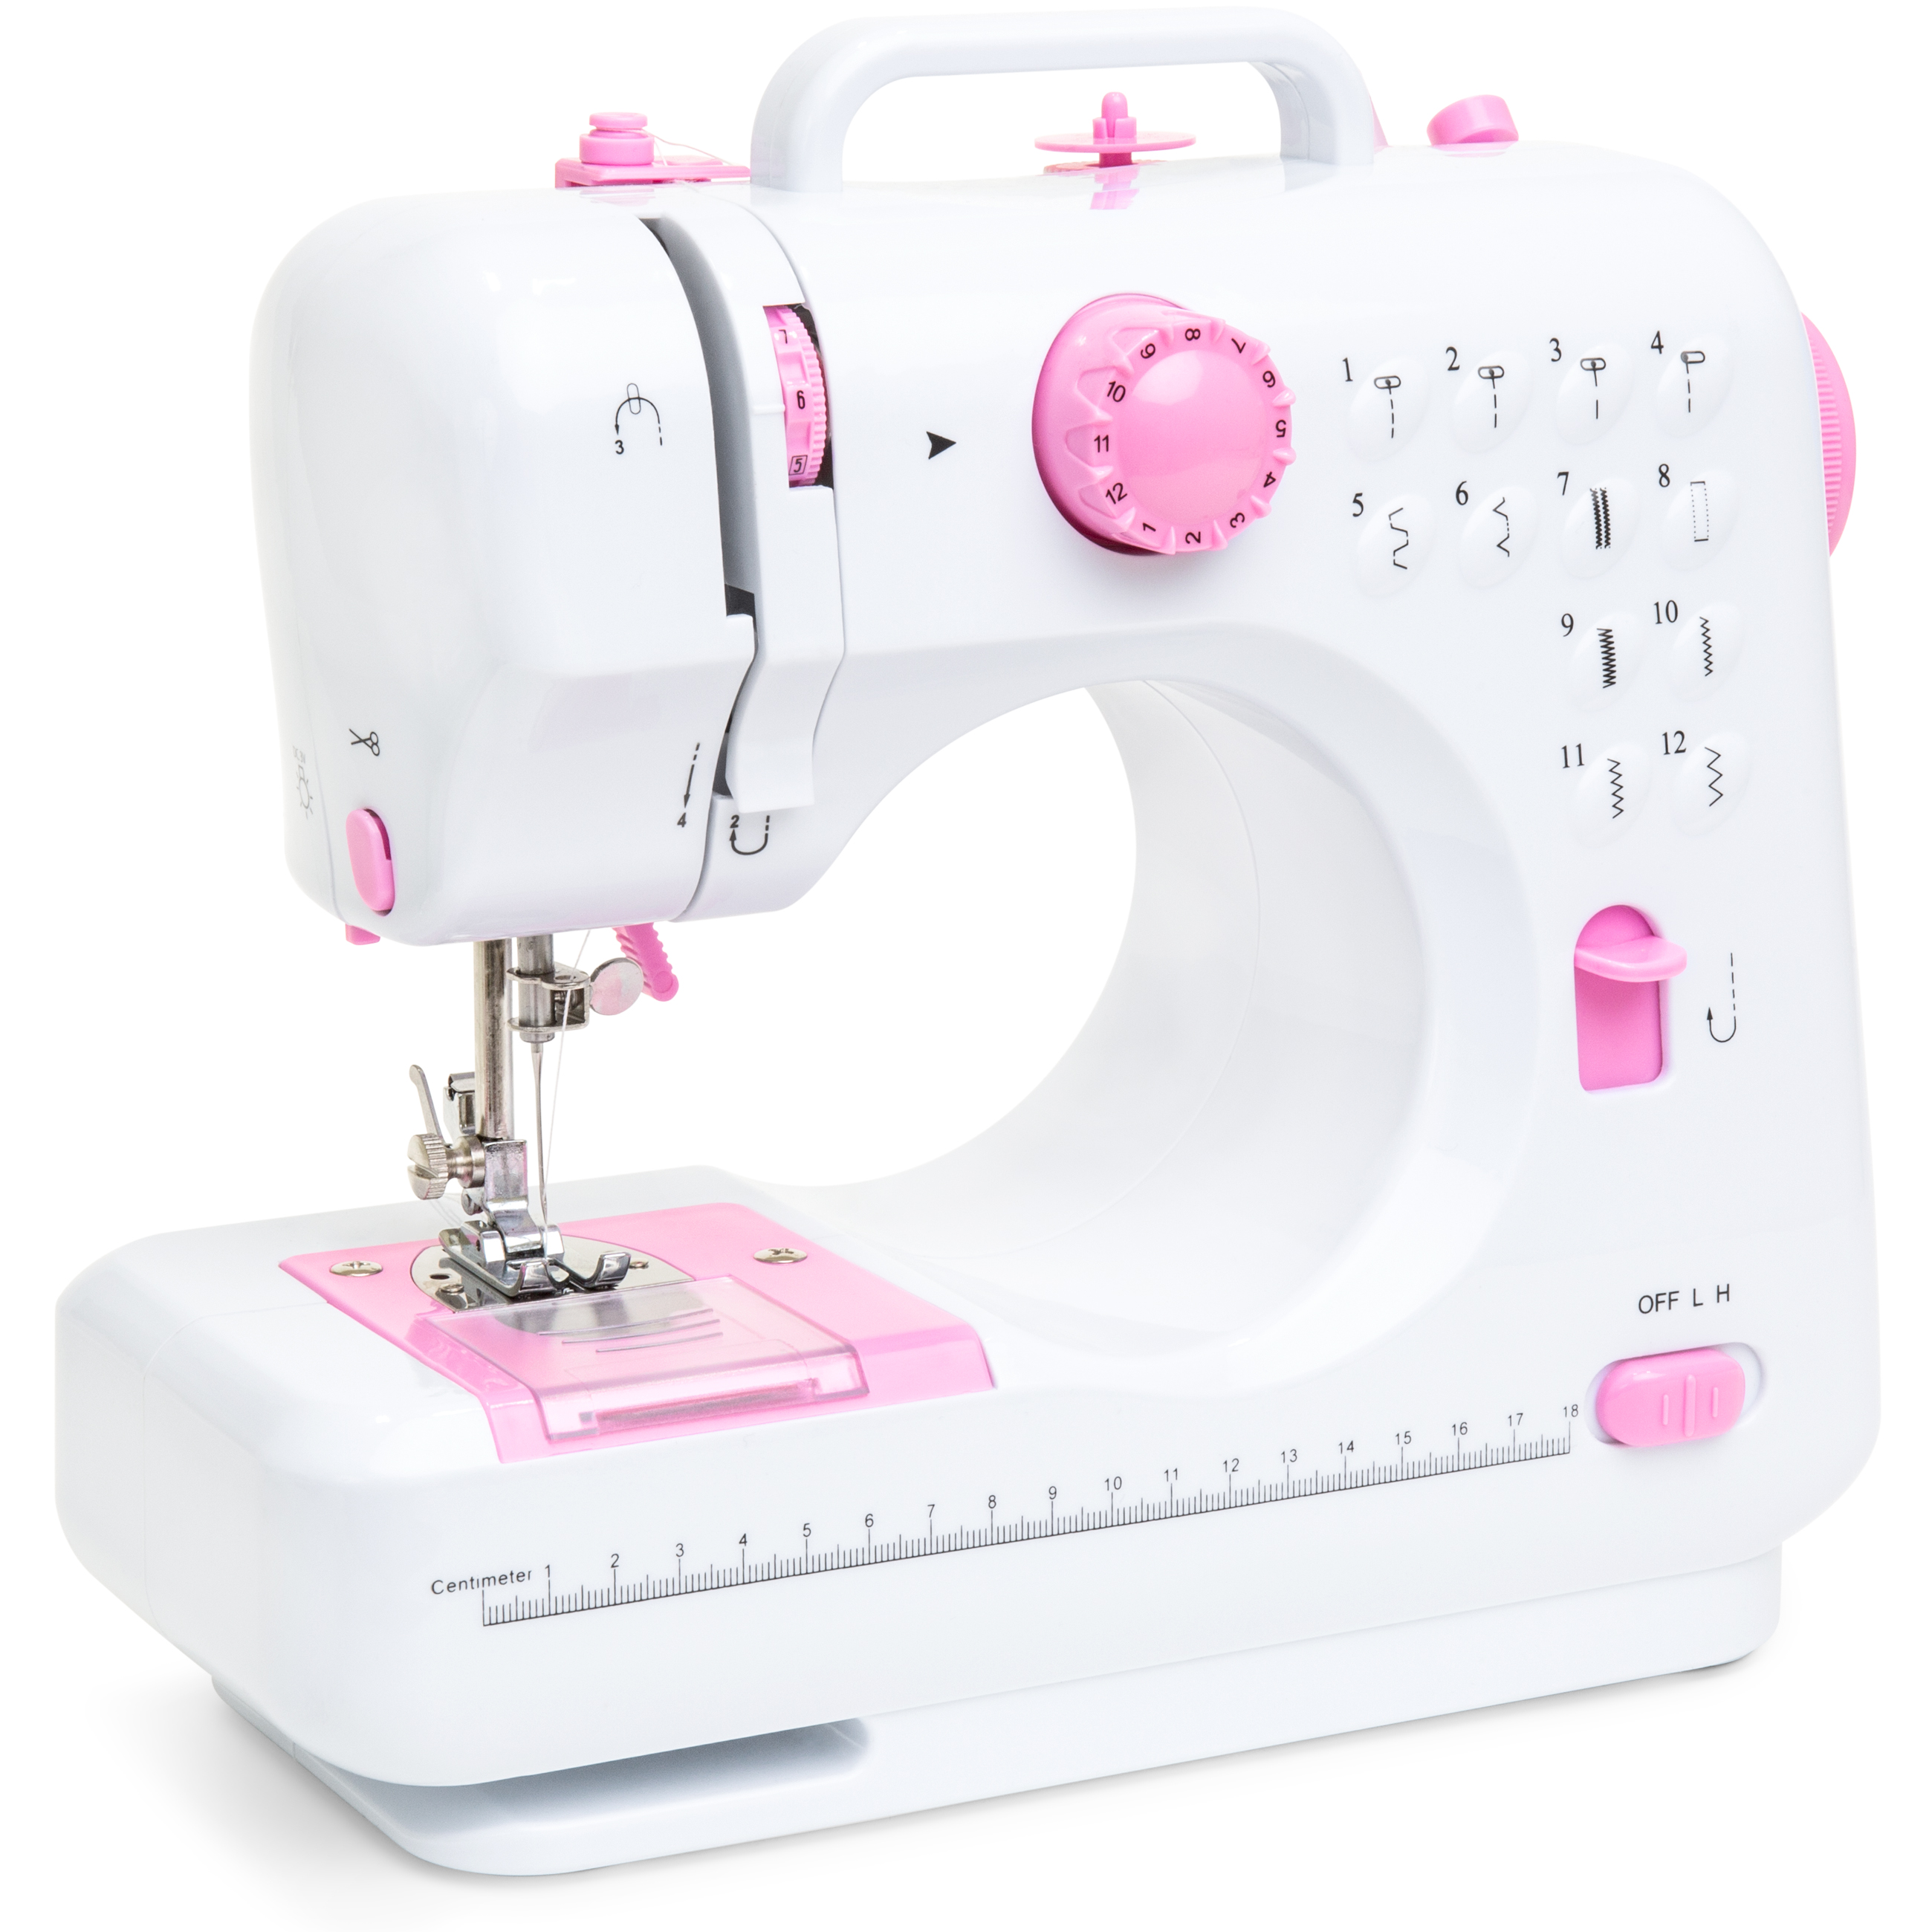 Best Choice Products 6V Compact Sewing Machine w/ 12 Stitch Patterns, Sewing Light, Drawer, Foot Pedal - White